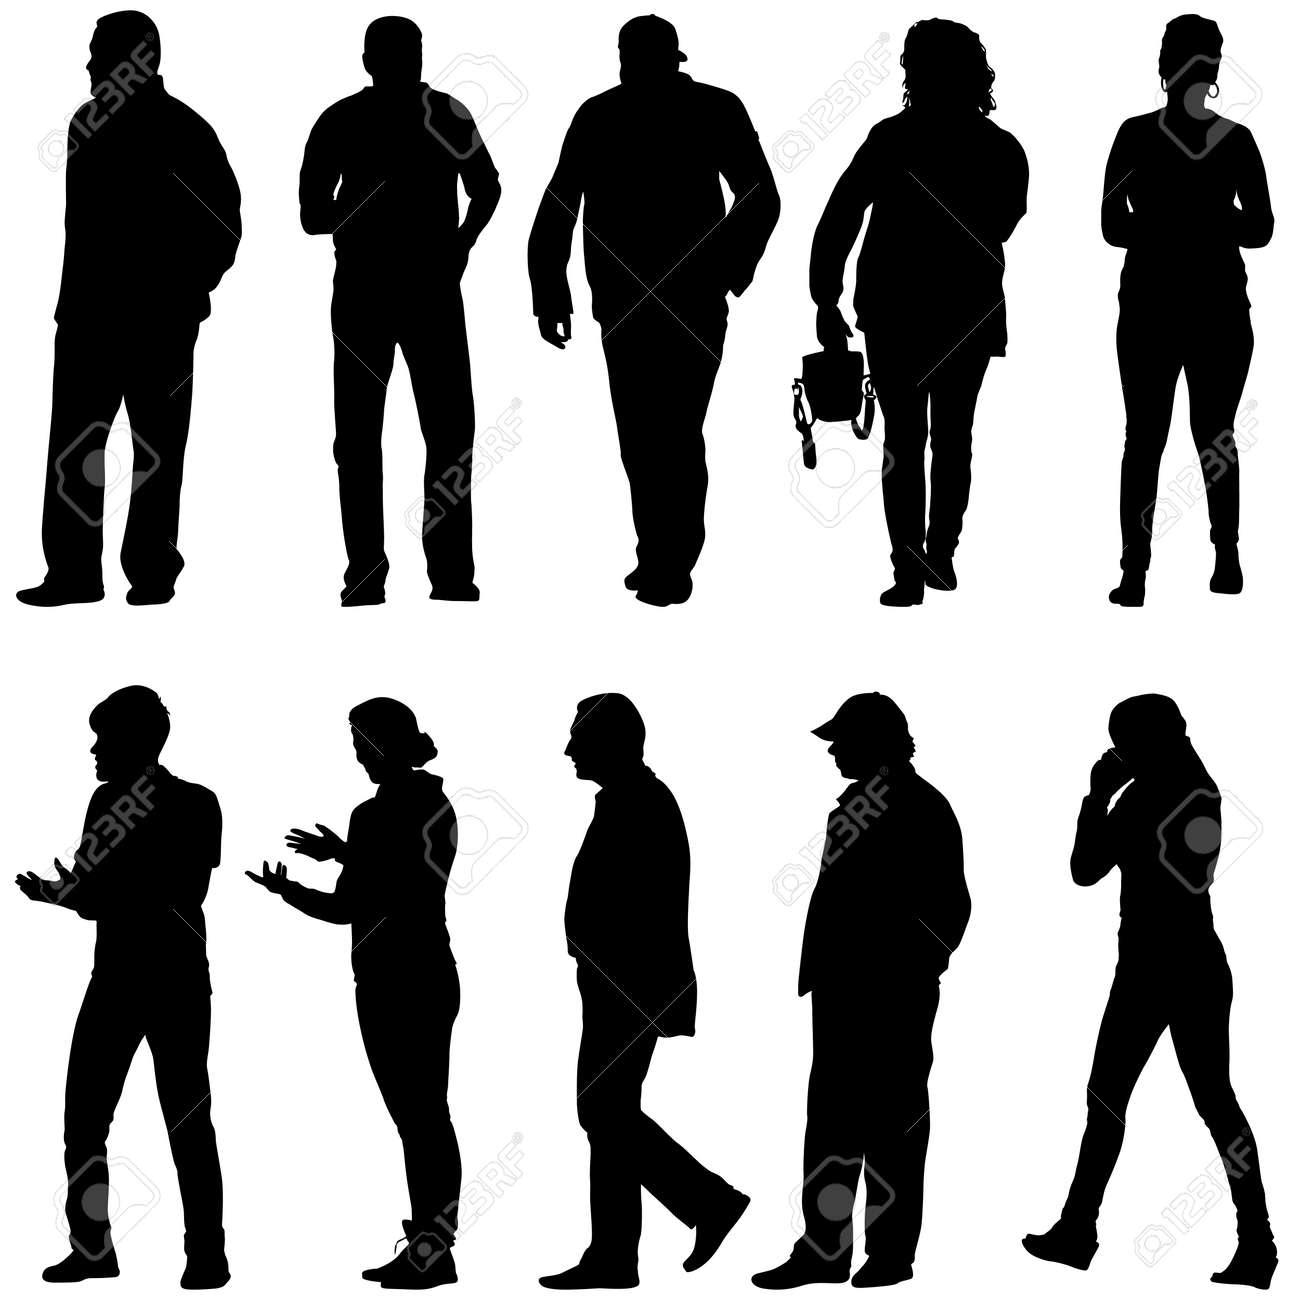 Silhouette Group of People Standing on White Background. - 159241318